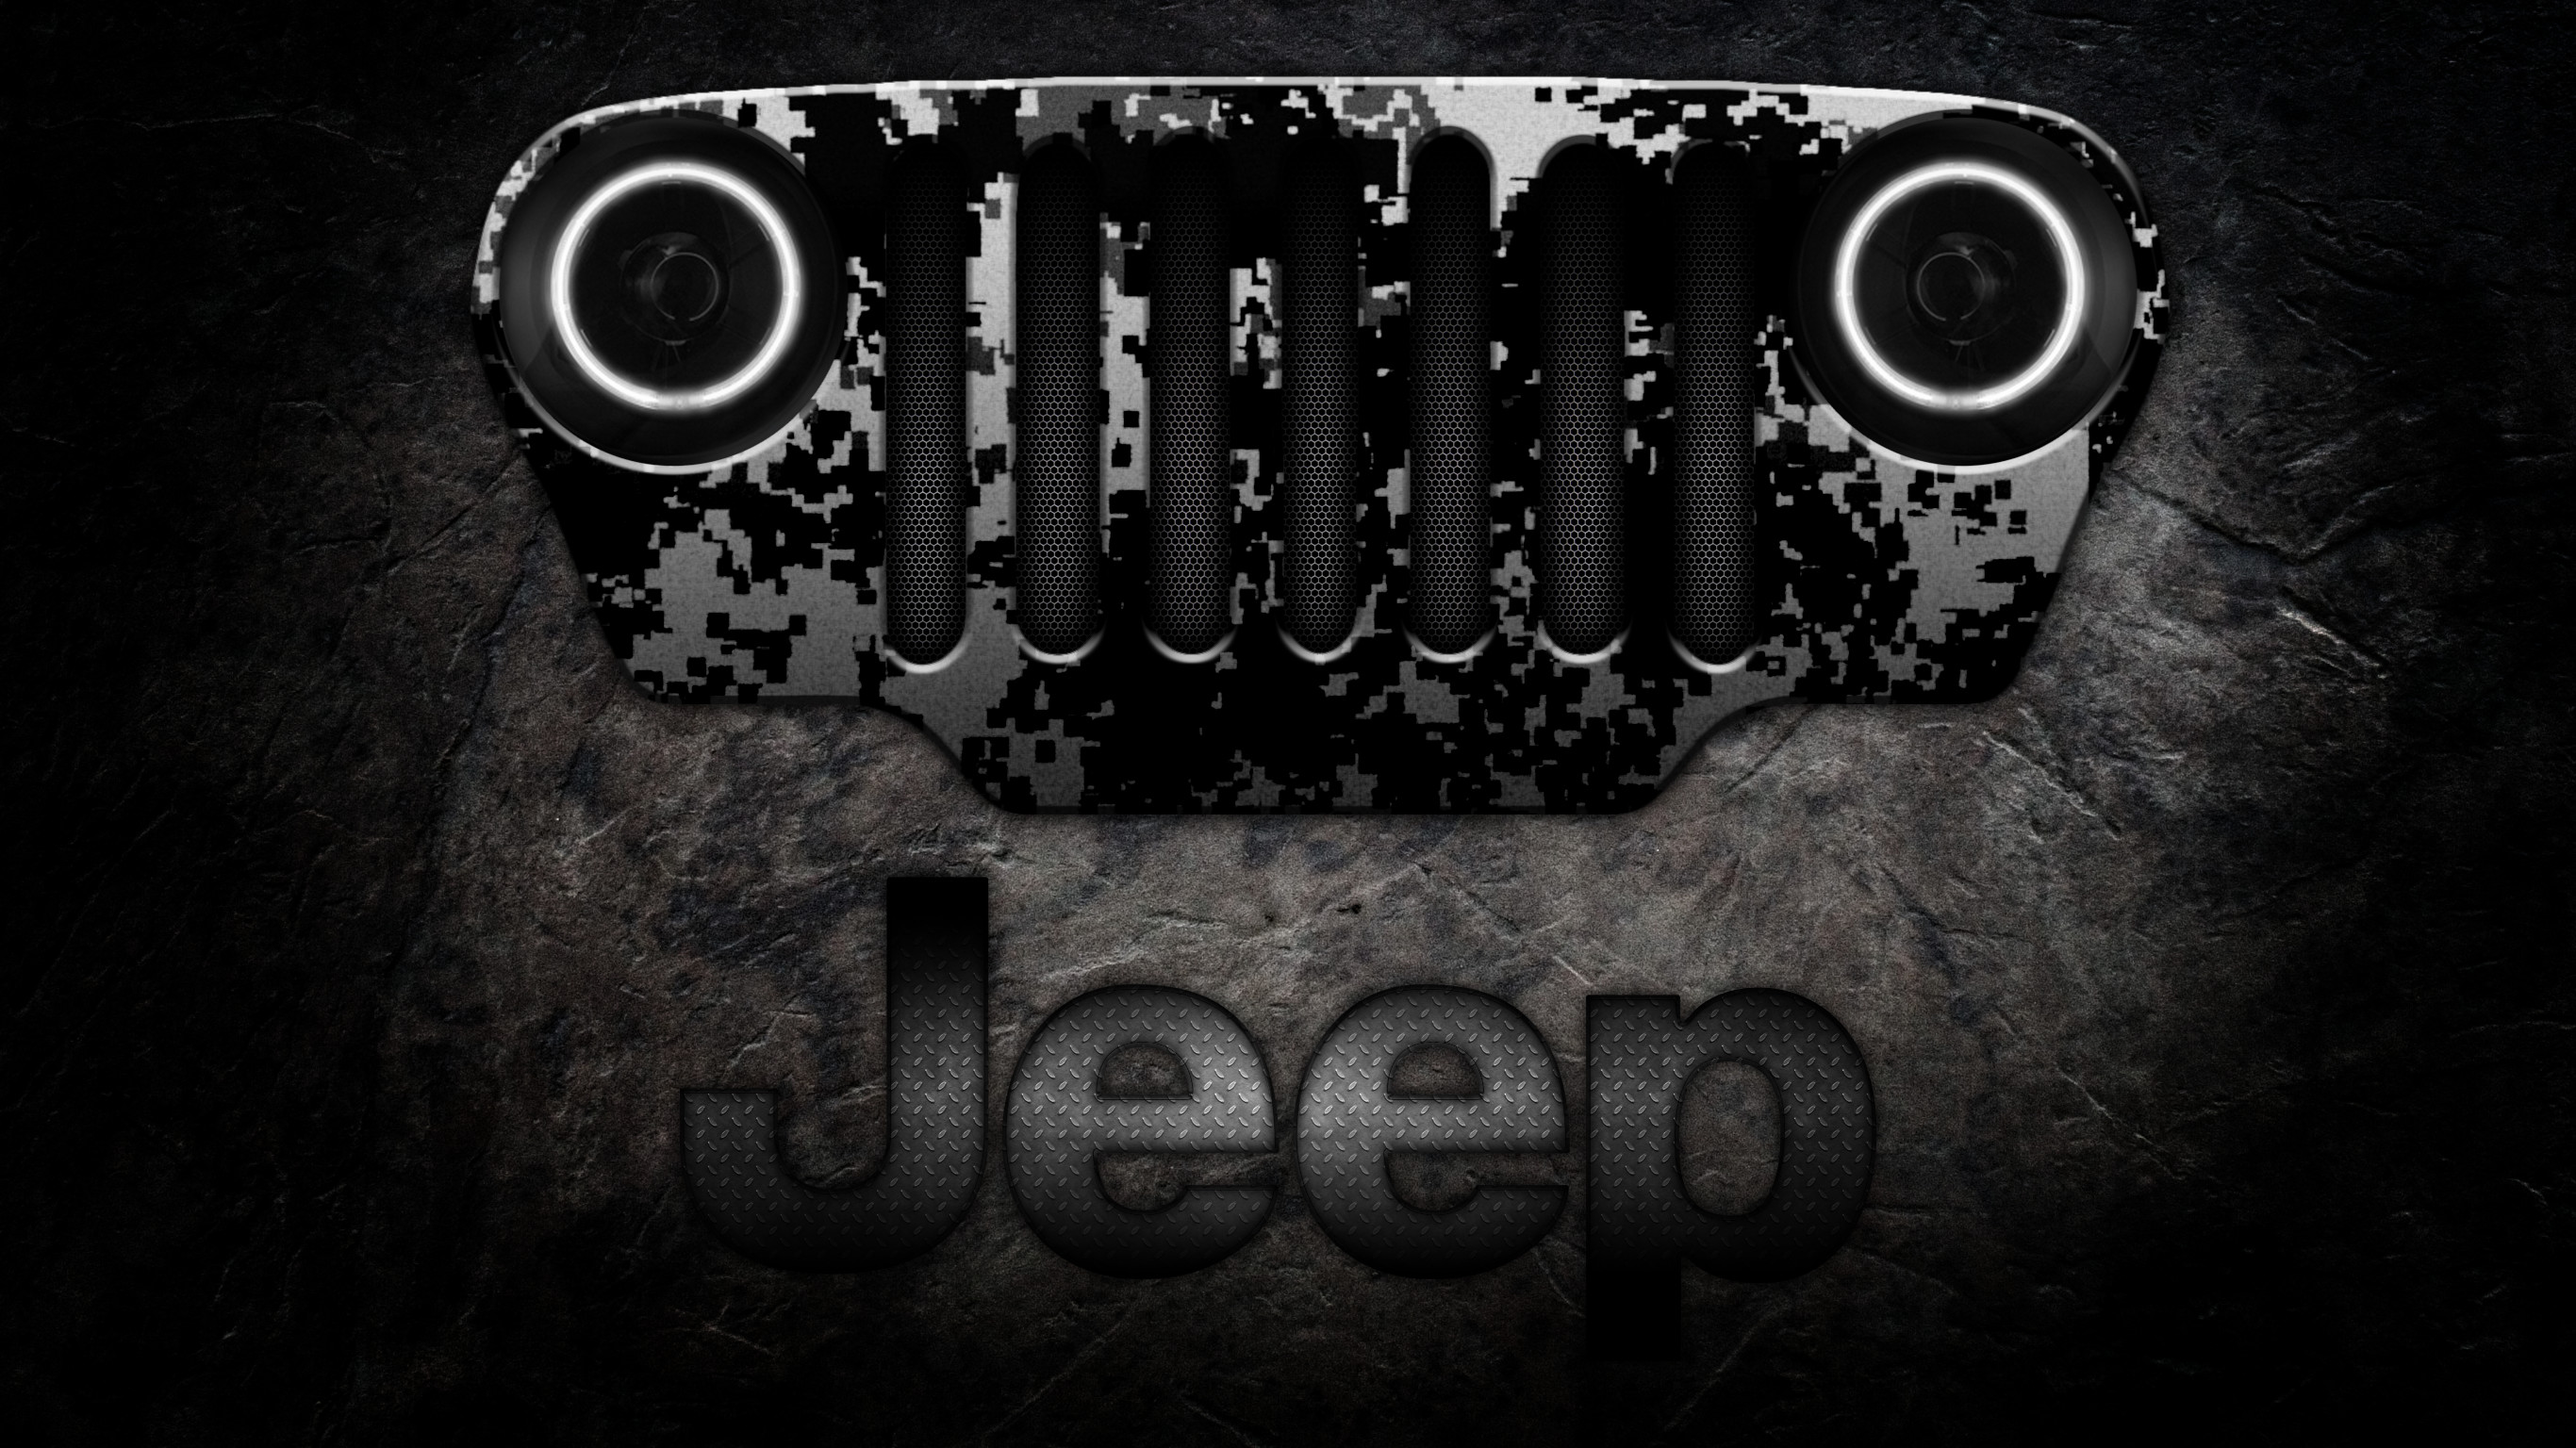 Jeep Iphone 5 Wallpaper Free and up for grabs – jeep